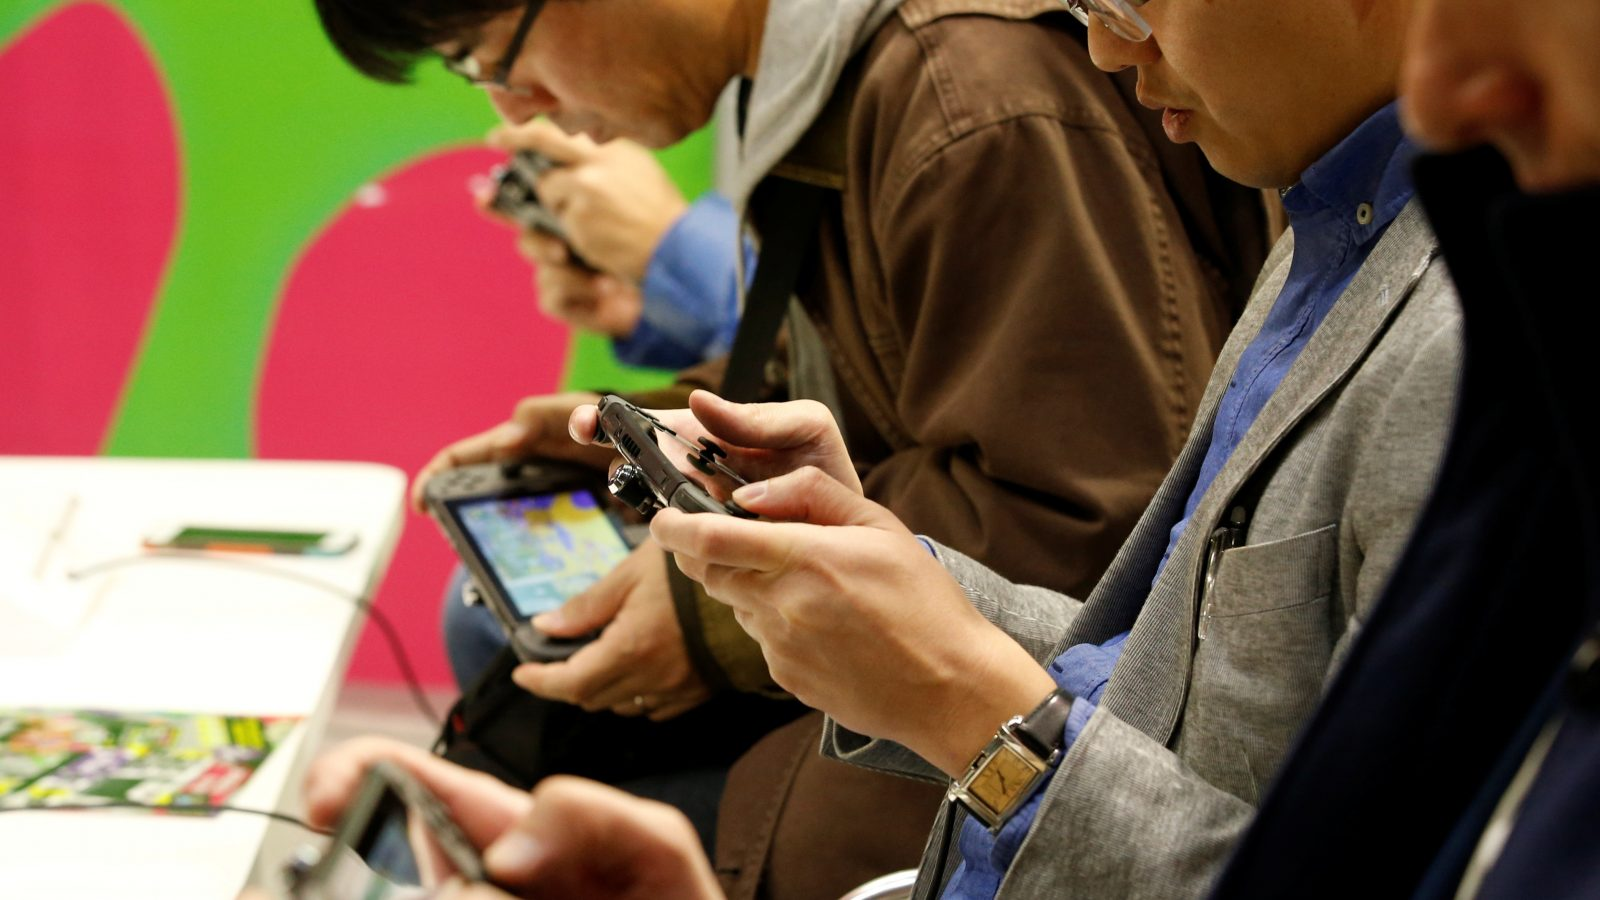 People play Nintendo's new game console Switch at its experience venue in Tokyo, Japan January 13, 2017. REUTERS/Kim Kyung-Hoon - RTX2YRDE